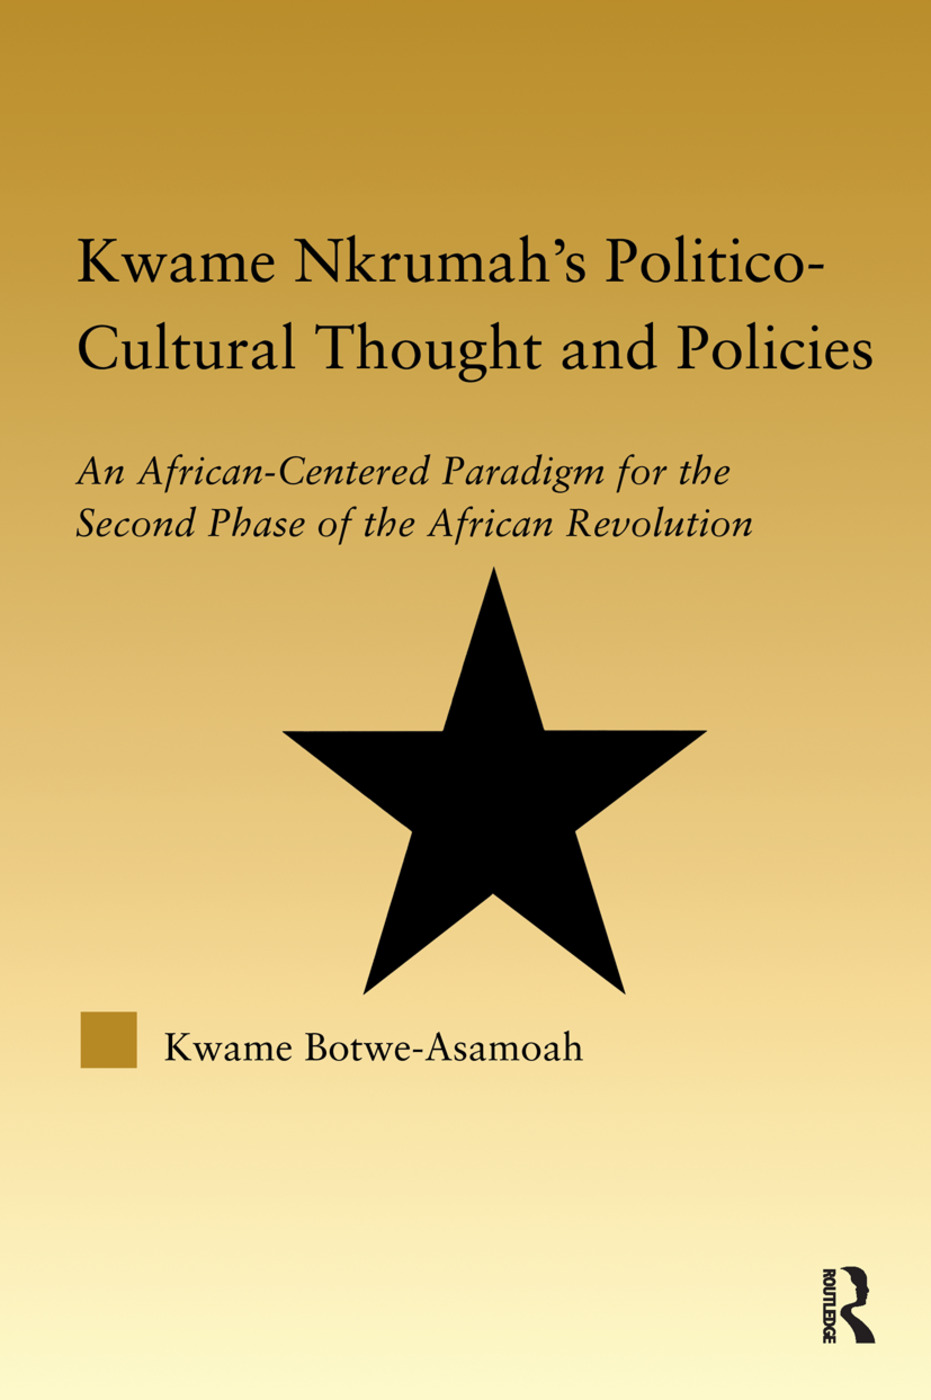 Kwame Nkrumah's Politico-Cultural Thought and Politics: An African-Centered Paradigm for the Second Phase of the African Revolution (Paperback) book cover